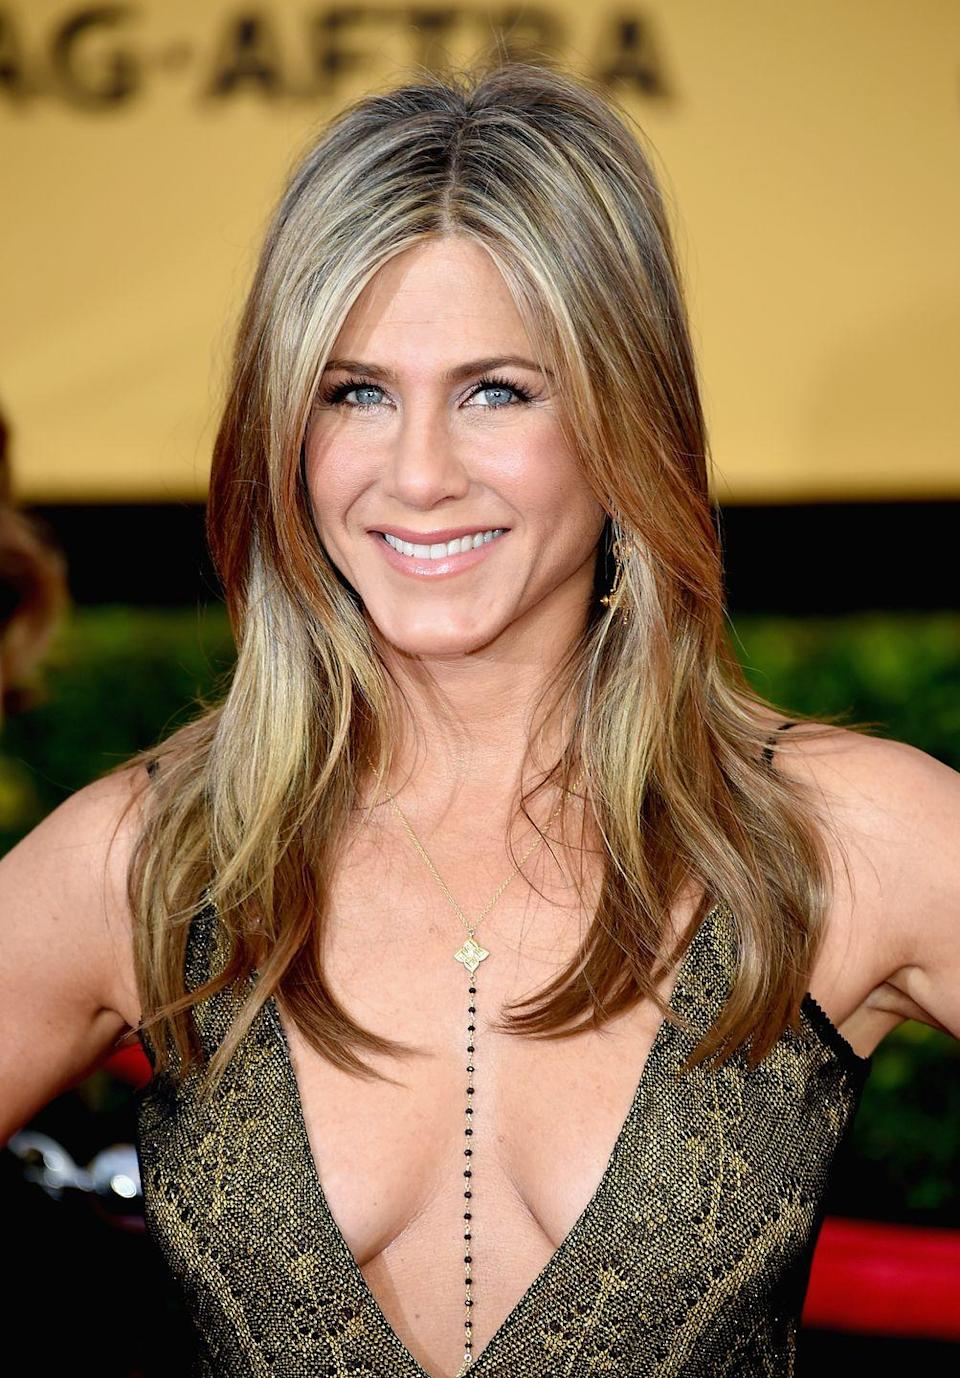 """<p>Jen knows how to keep her skin hydrated. In a <a href=""""https://www.womenshealthmag.com/life/a19937094/jennifer-aniston-beauty-products/"""" rel=""""nofollow noopener"""" target=""""_blank"""" data-ylk=""""slk:2014 interview"""" class=""""link rapid-noclick-resp"""">2014 interview</a>, revealed that staying hydrated and really scrubbing your pores is the key to a shining complexion. And if you've never tried royal jelly before, she highly recommends.<br></p>"""